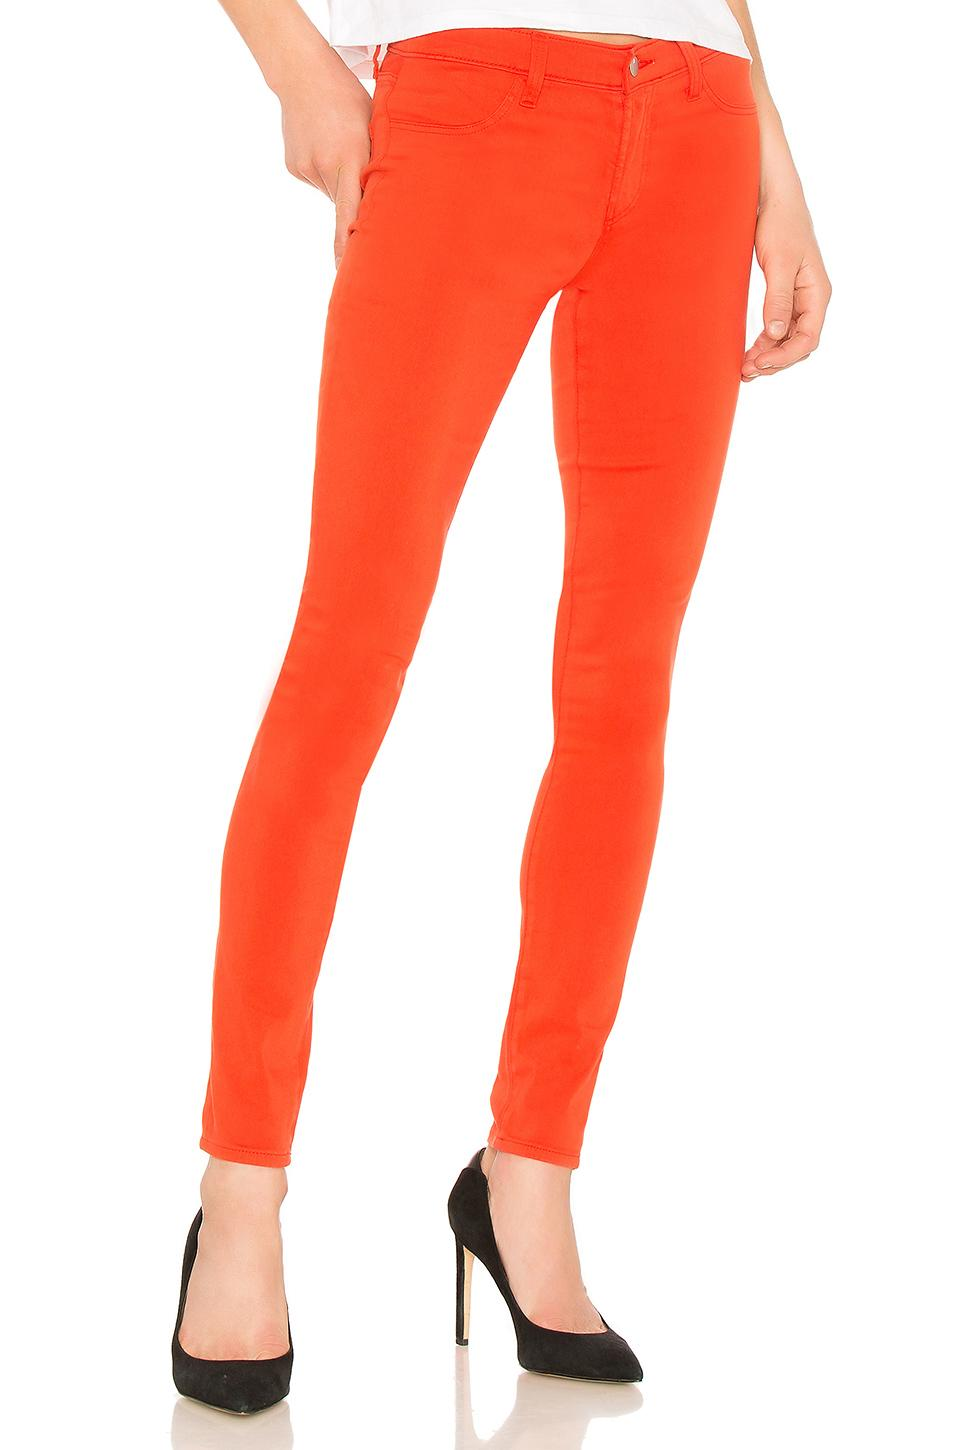 J Brand 485 Mid-rise Super Skinny-leg Jeans In Bright Coral